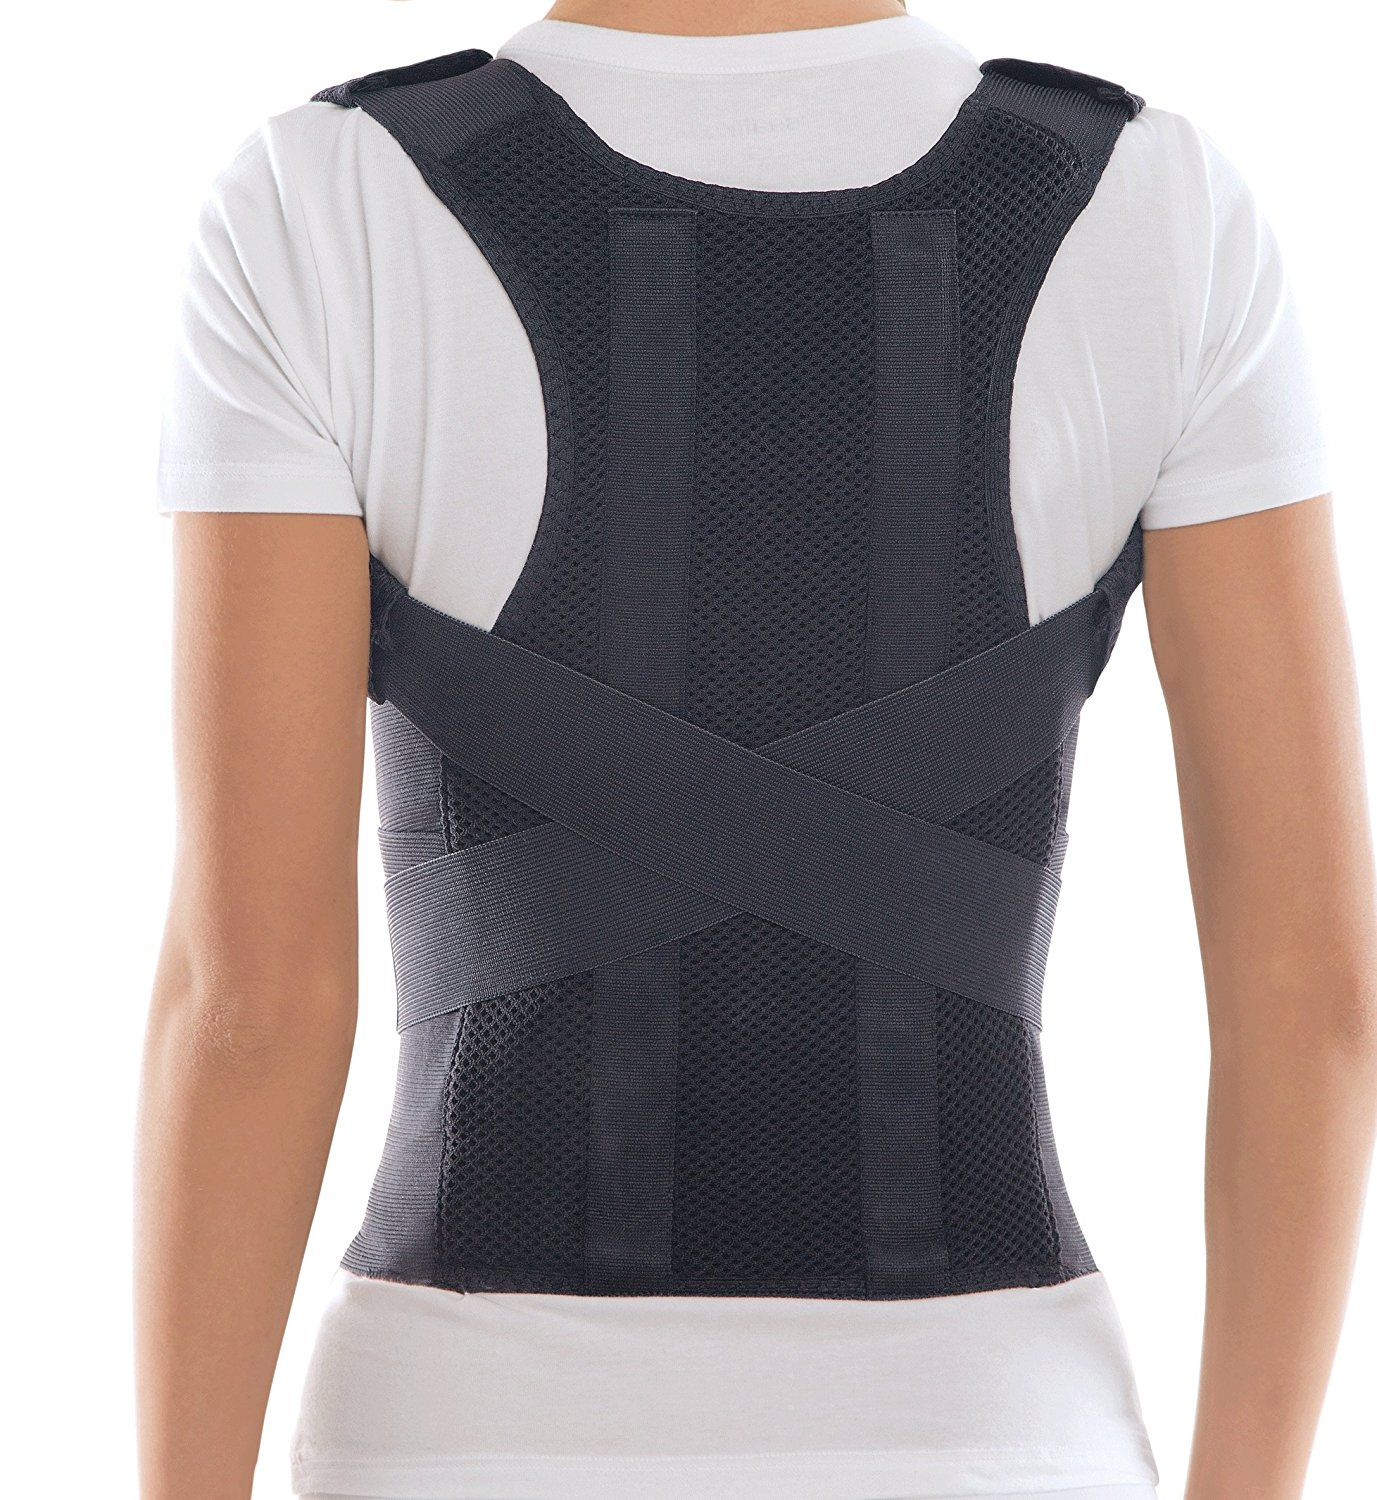 643913517dcb3 Posture Corrector from TOROS GROUP. Special Feature  The lumbar pad is  indulged in this posture brace. Key features  + adjustable shoulder belt ...